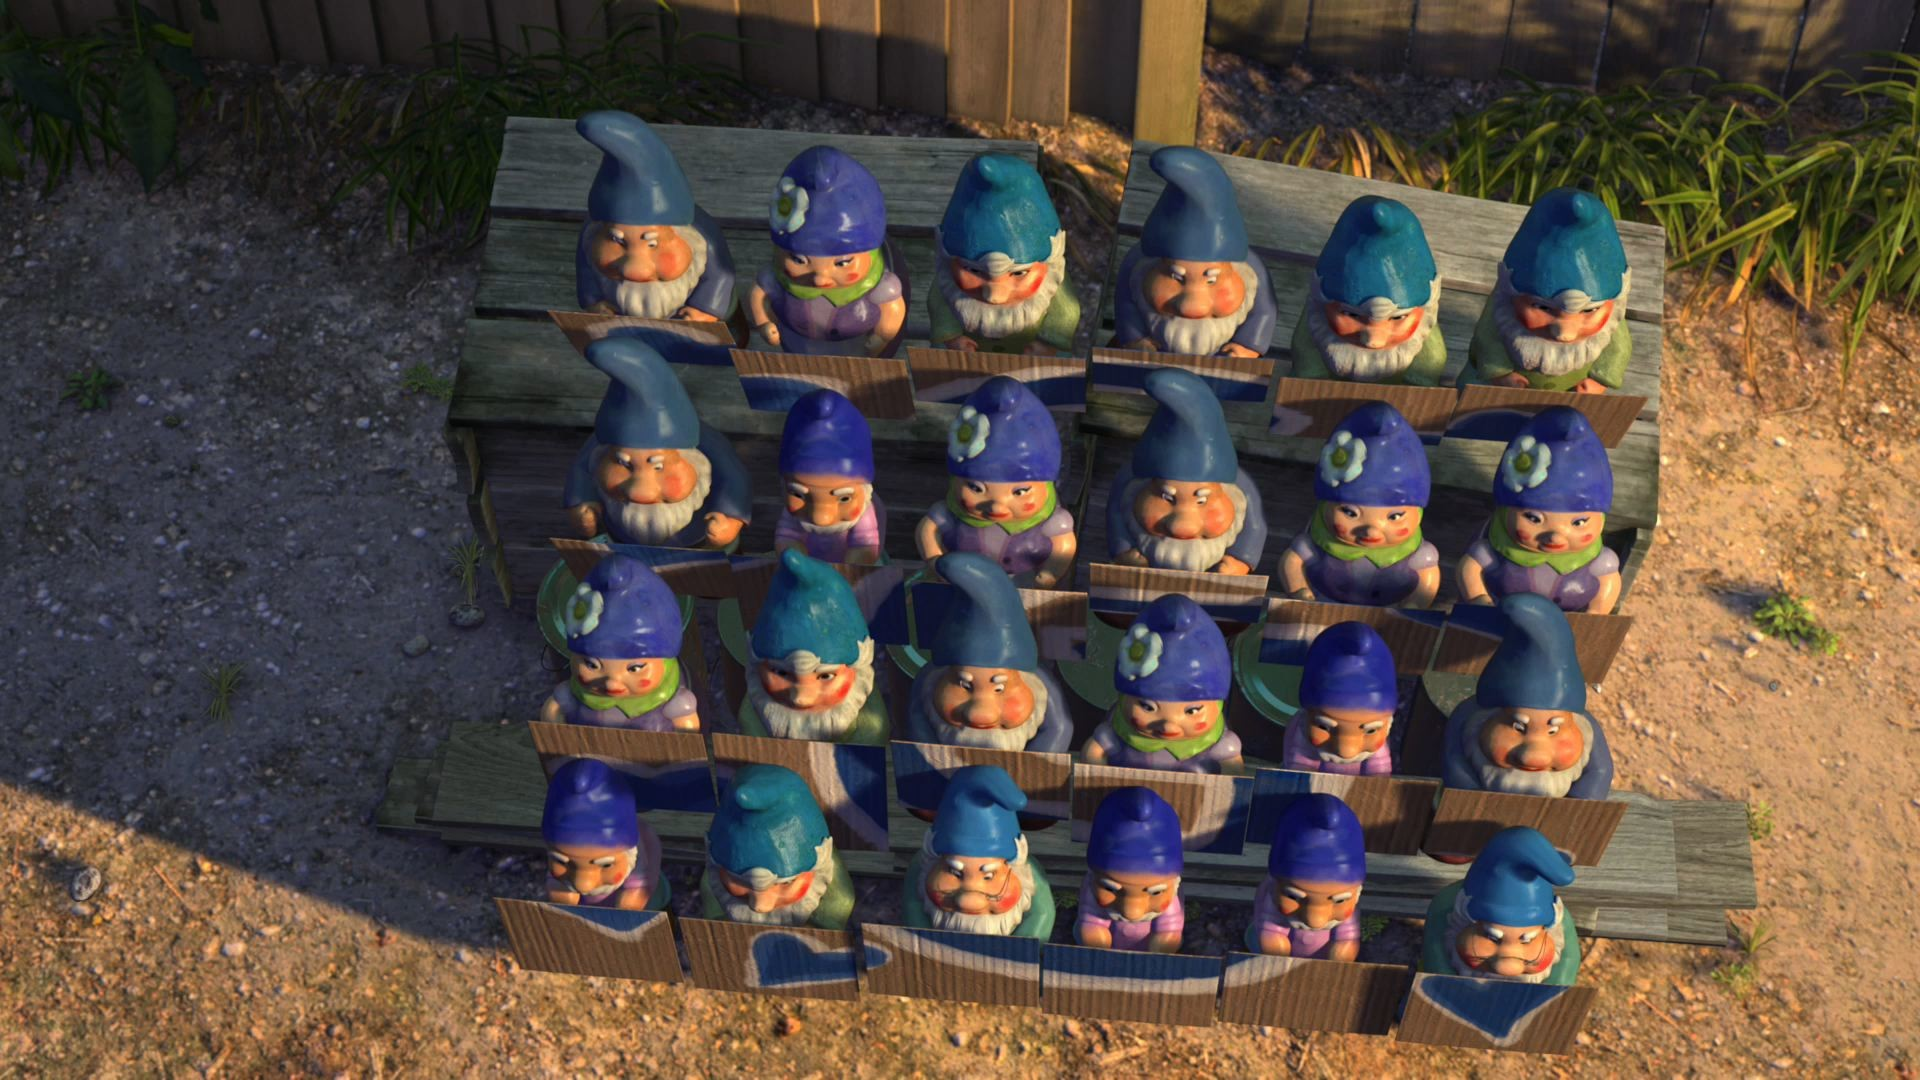 Res: 1920x1080, Blue Garden Gnomes from Gnomeo and Juliet wallpaper - Click picture for  high resolution HD wallpaper